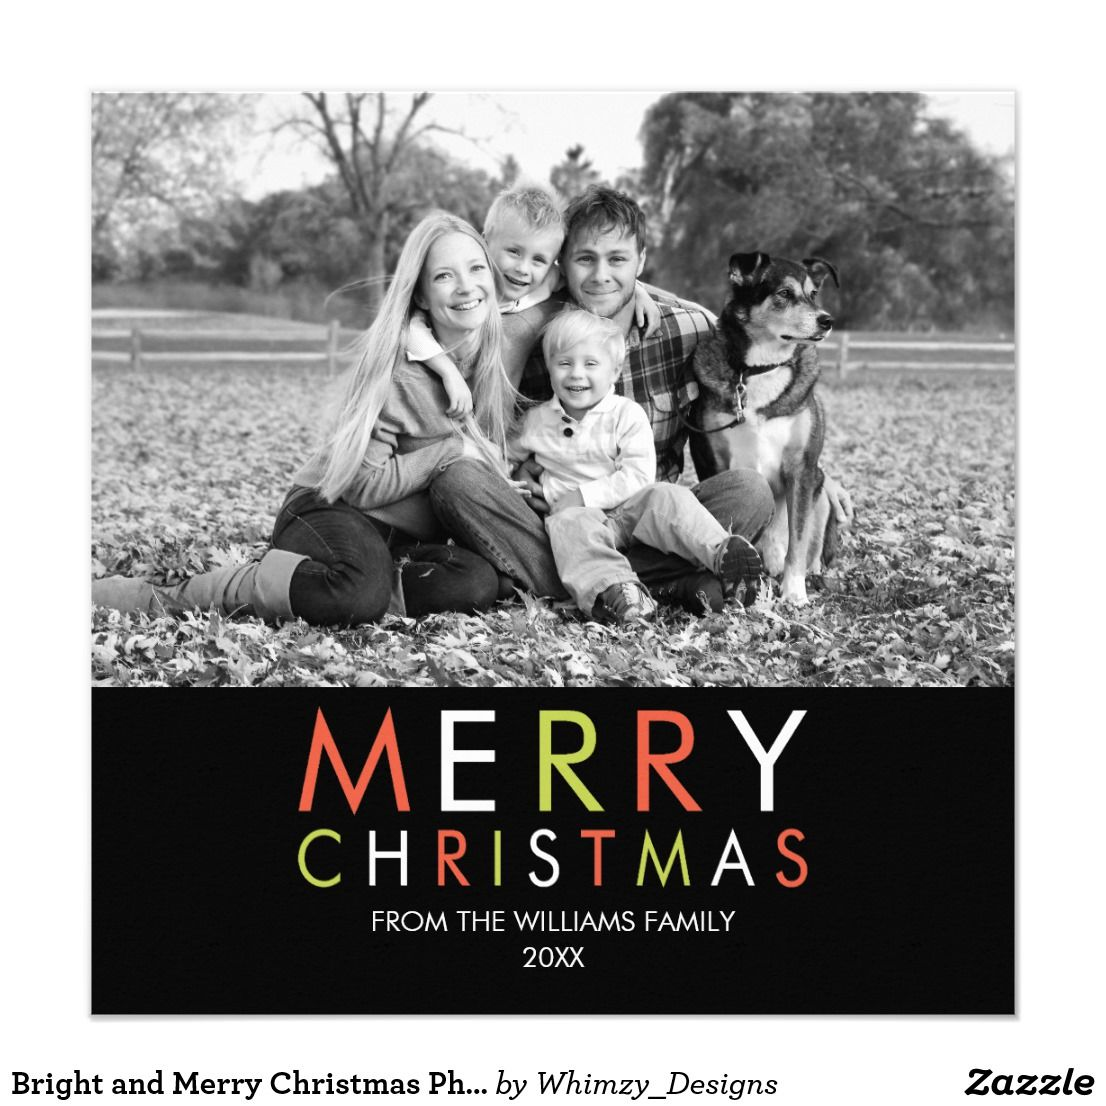 Bright and merry christmas photo card black